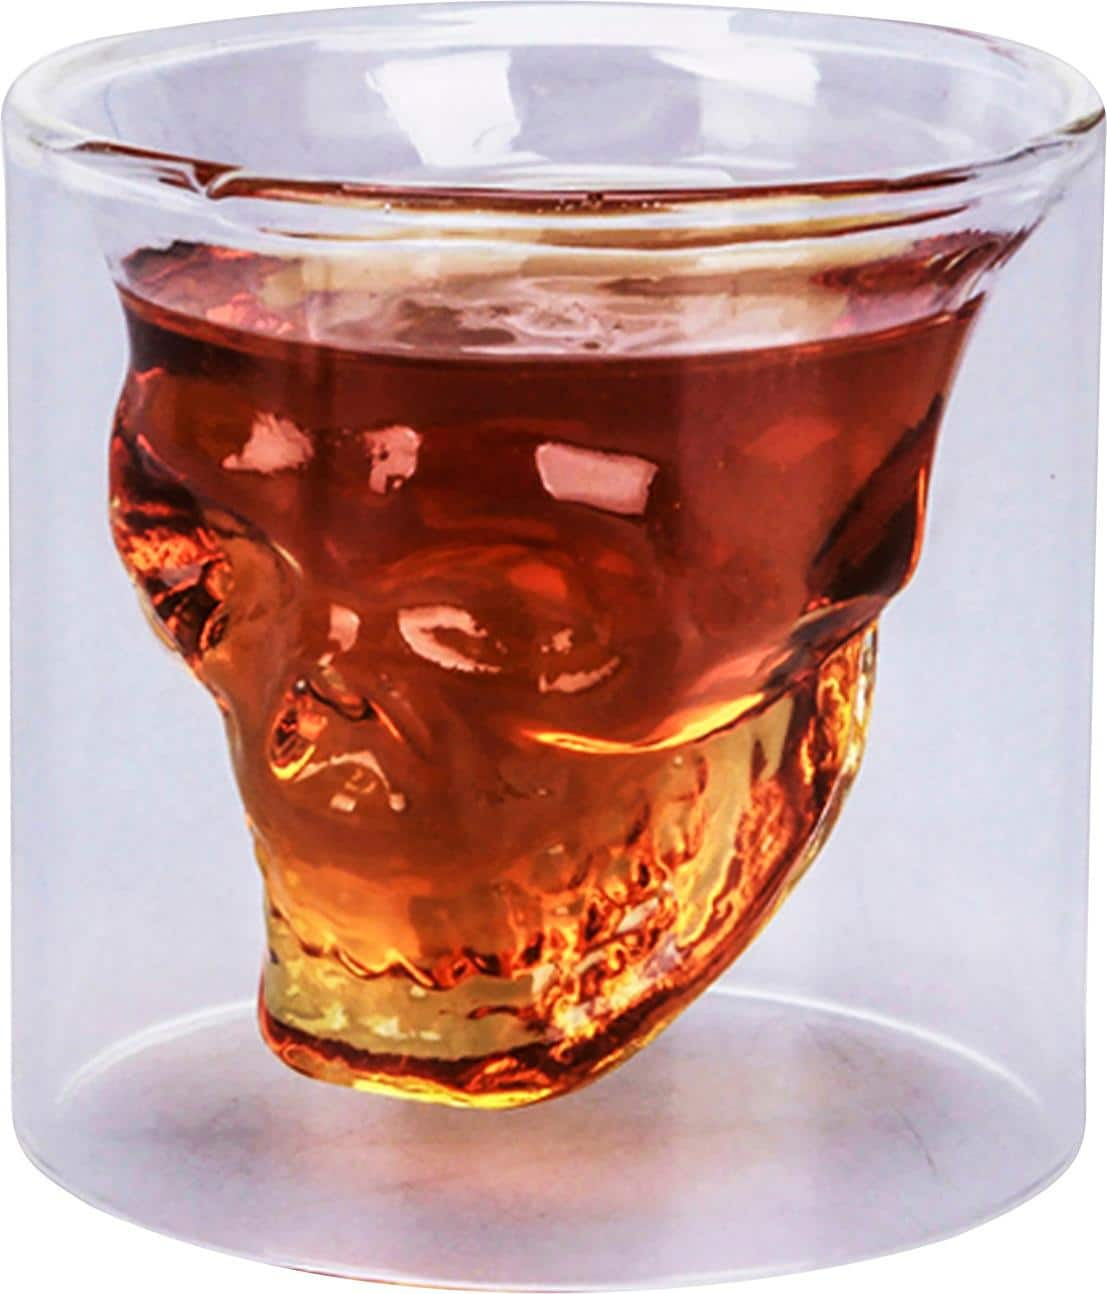 Samsonico USA - 2-Oz. Skull Shot Glass - Clear glass x 2 for $12 plus $10 back in discount code later @ Best Buy